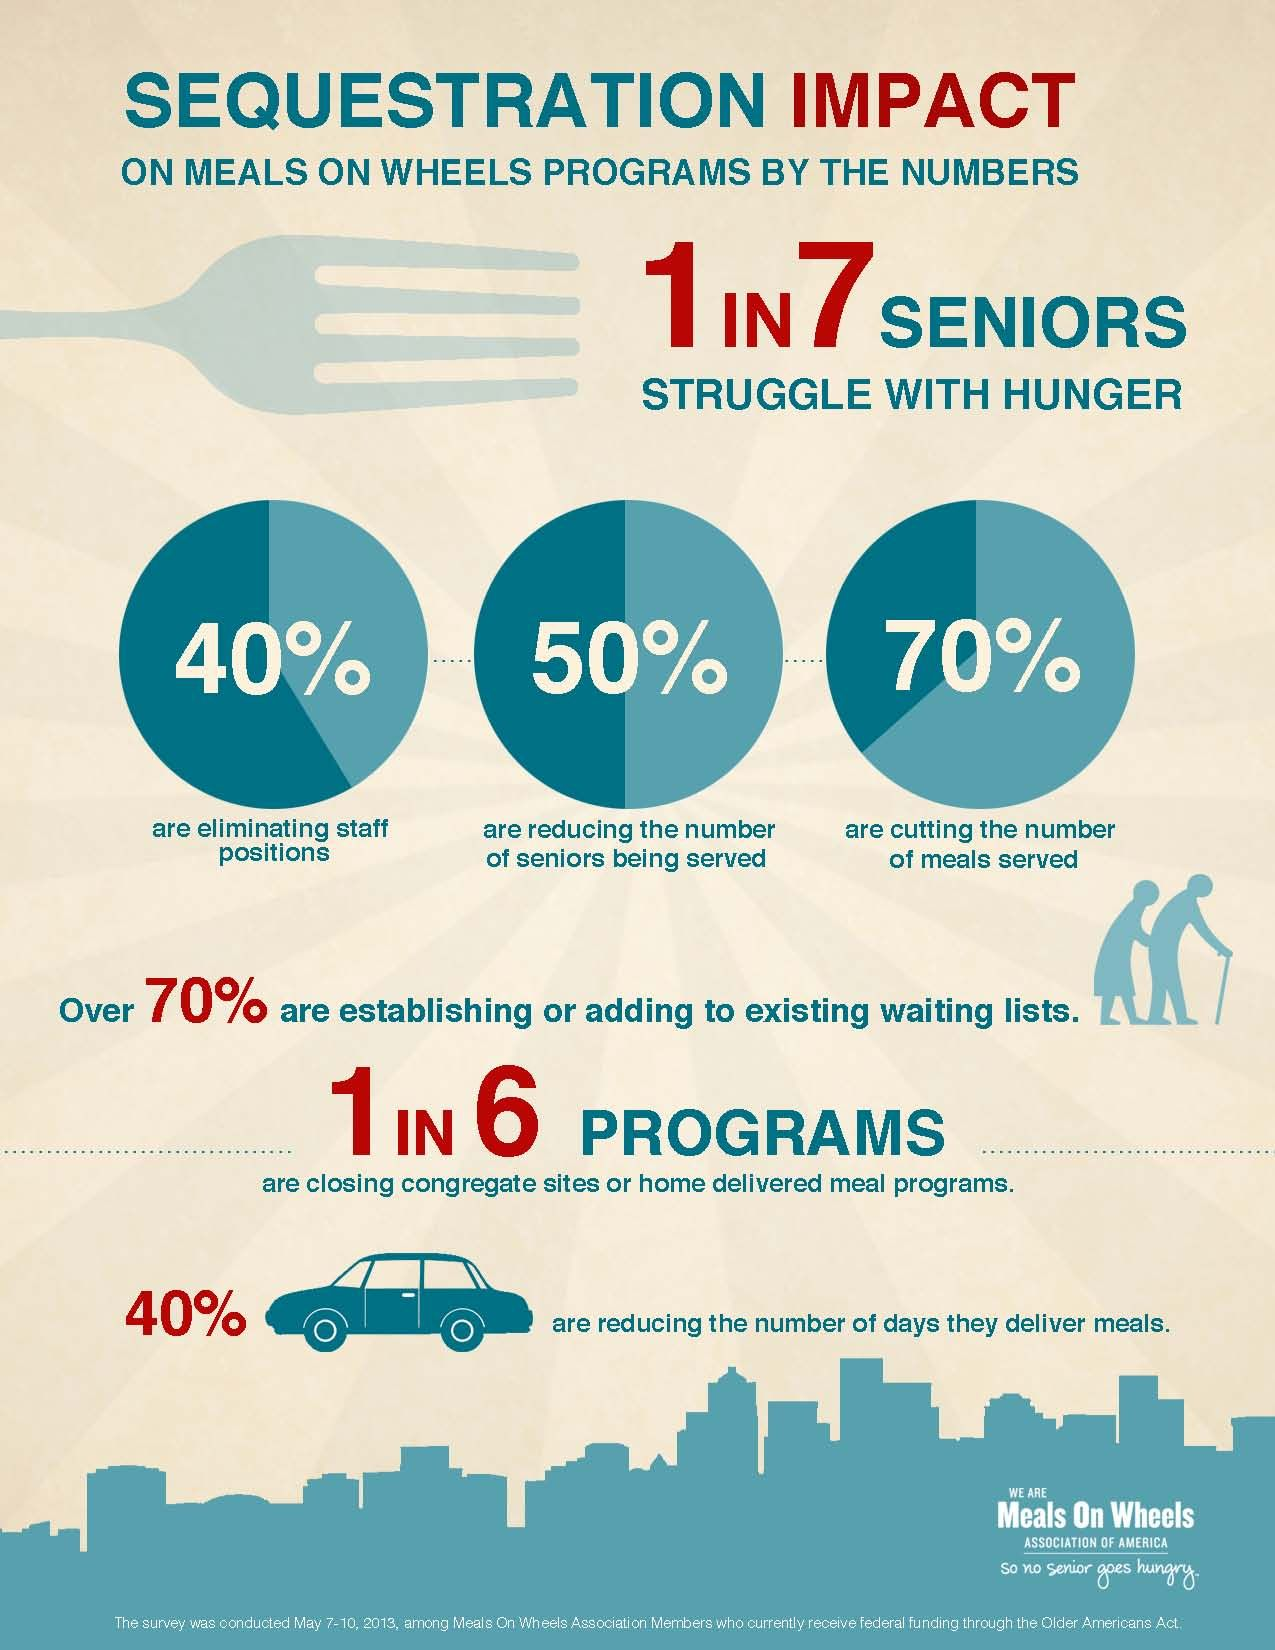 meals on wheels sequester images | Sequestration and Meals